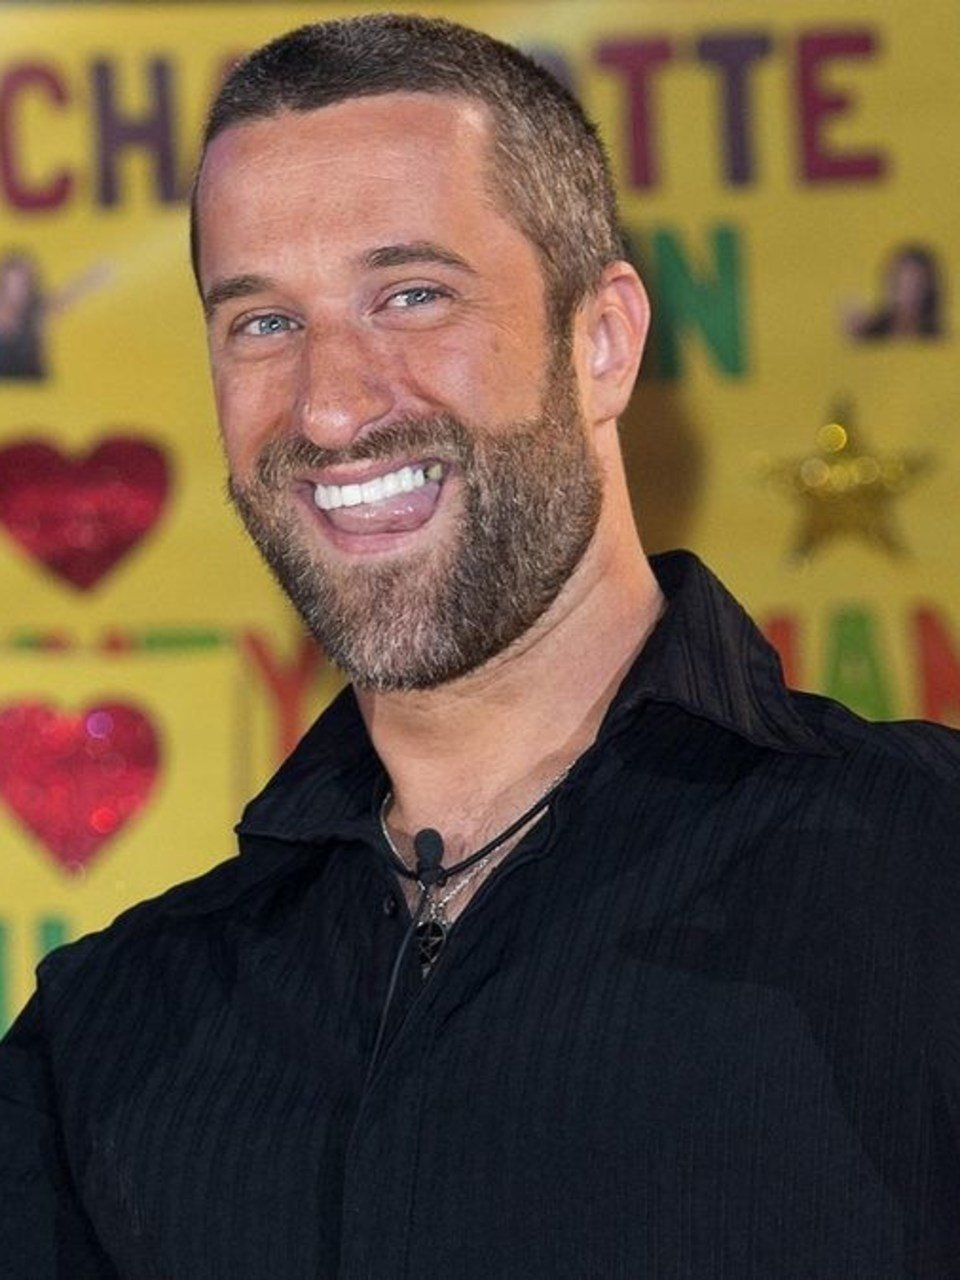 Dustin Diamond was confirmed to be battling cancer on January 15, 2021. | Photo: Facebook/DustinDiamond.